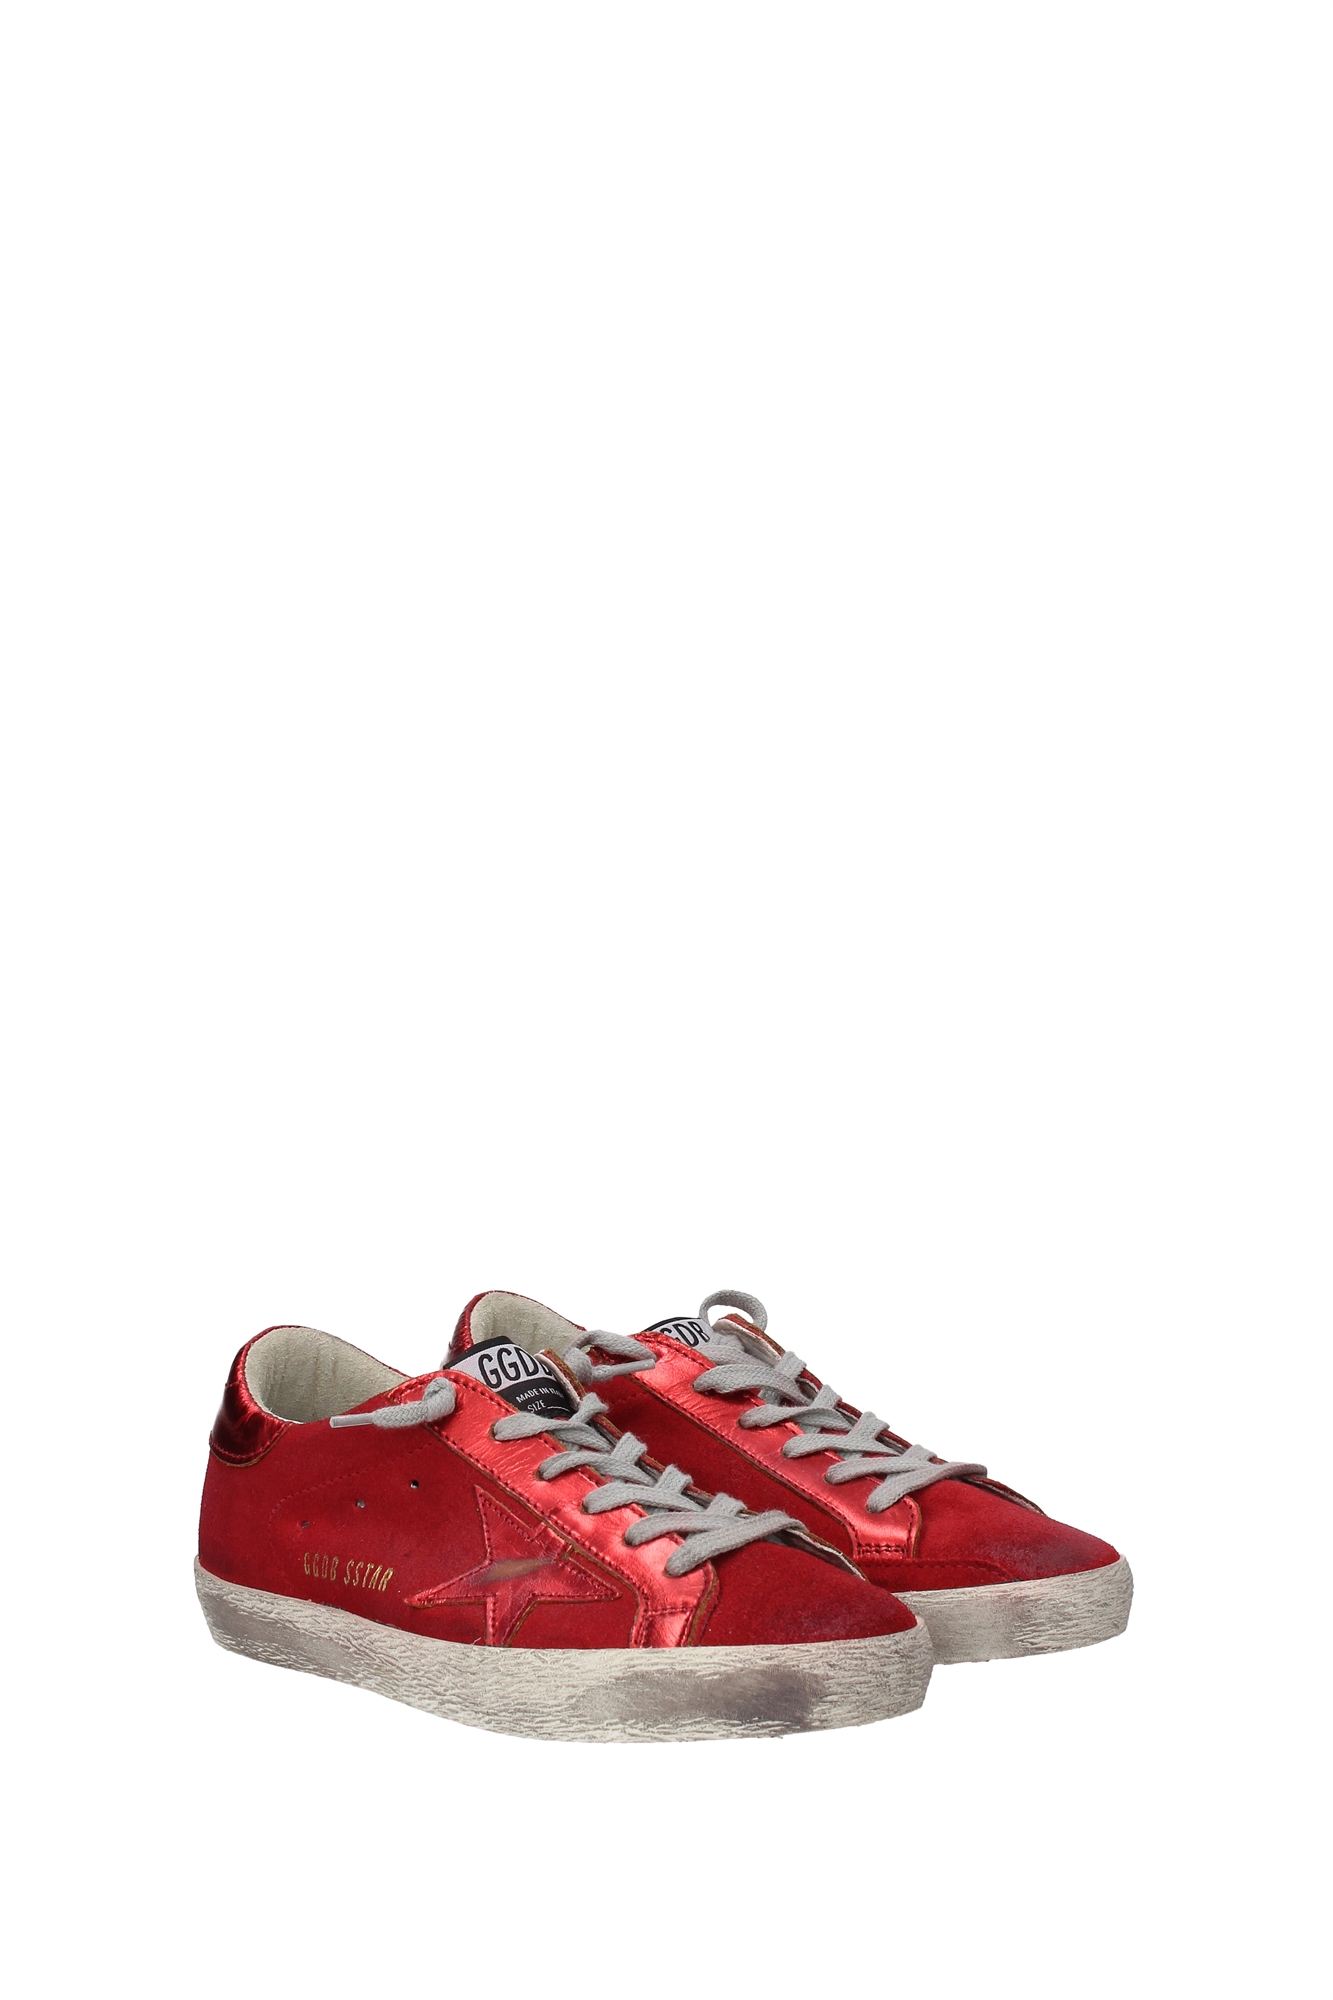 sneakers golden goose damen wildleder rot g29ws590a80 ebay. Black Bedroom Furniture Sets. Home Design Ideas